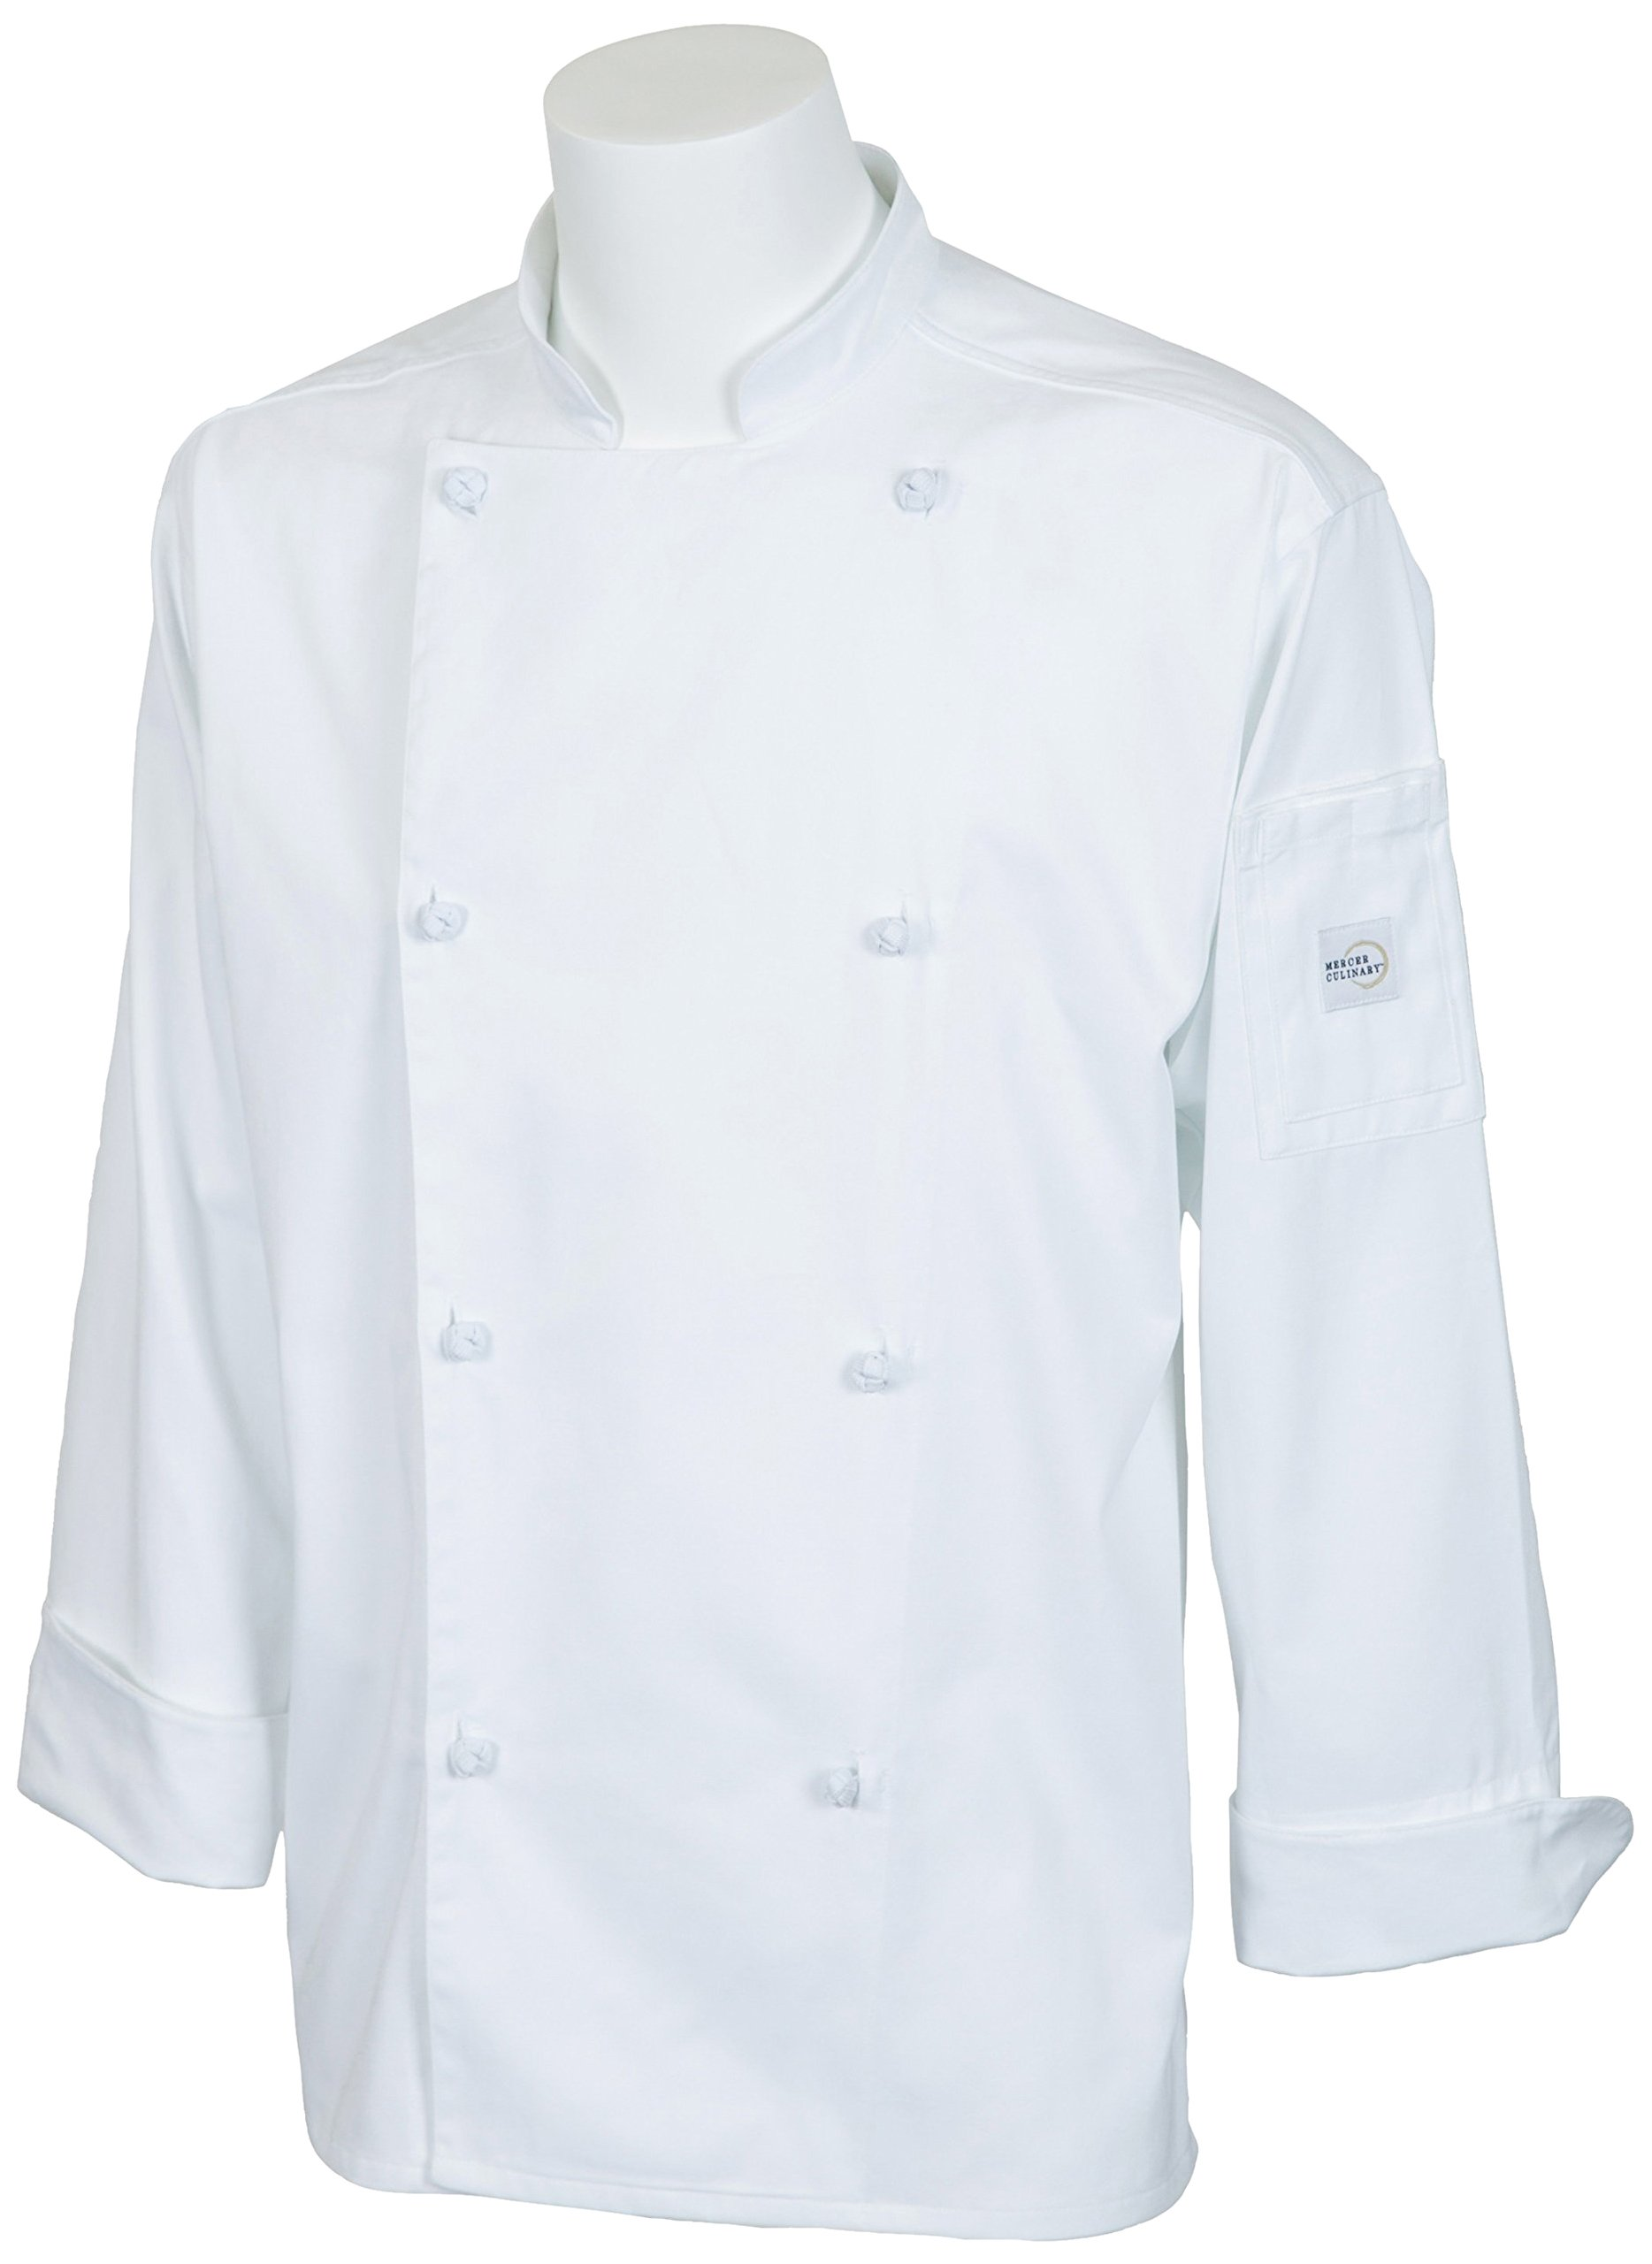 Mercer Culinary M61020WHXS Genesis Men's Jacket with Cloth Knot Buttons, X-Small, White